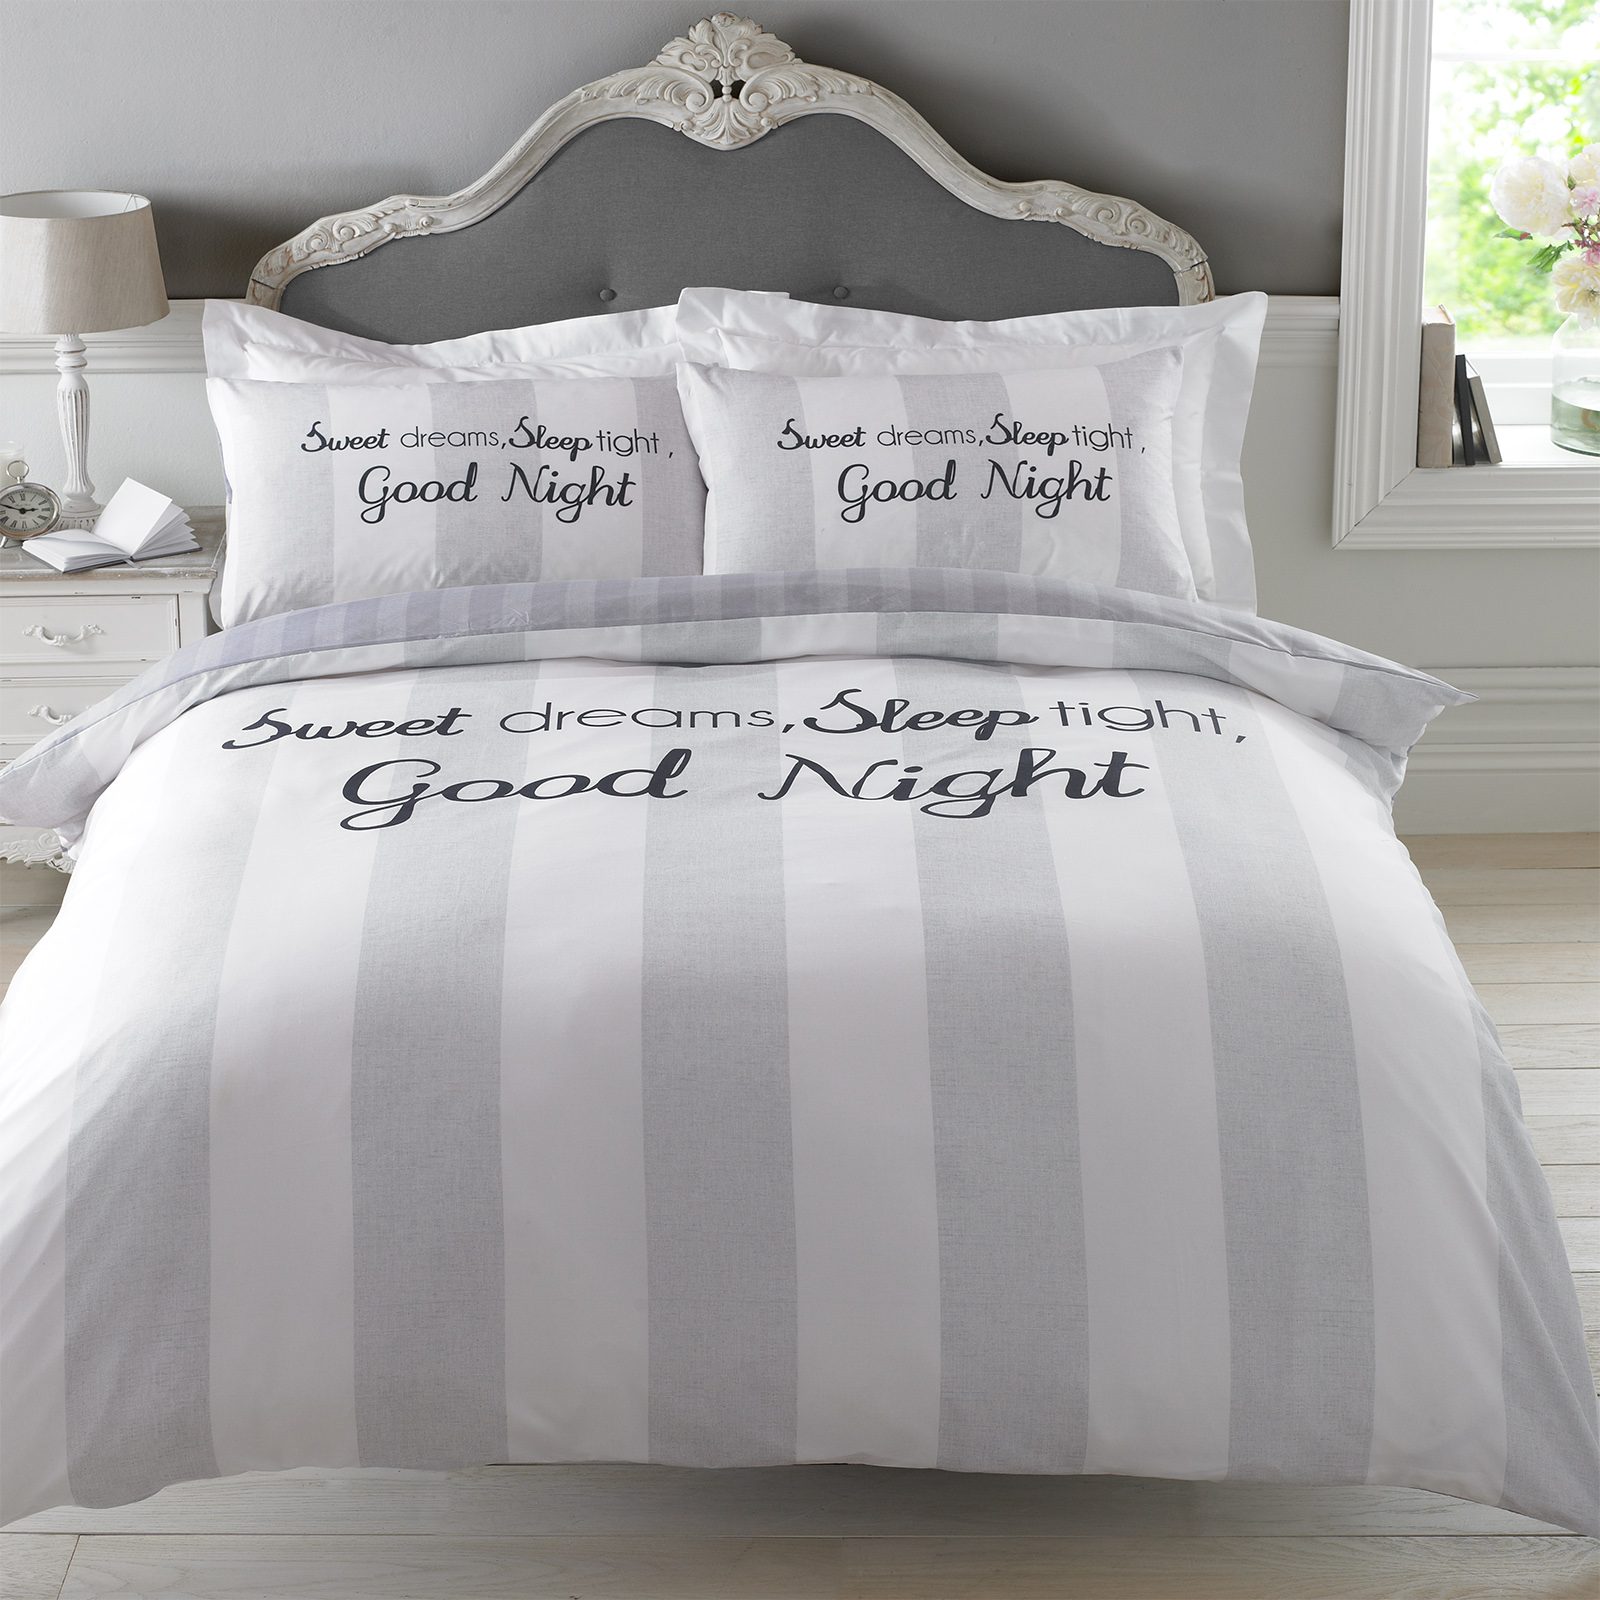 Dreamscene Sweet Dreams Duvet Cover With Pillowcase Stripe